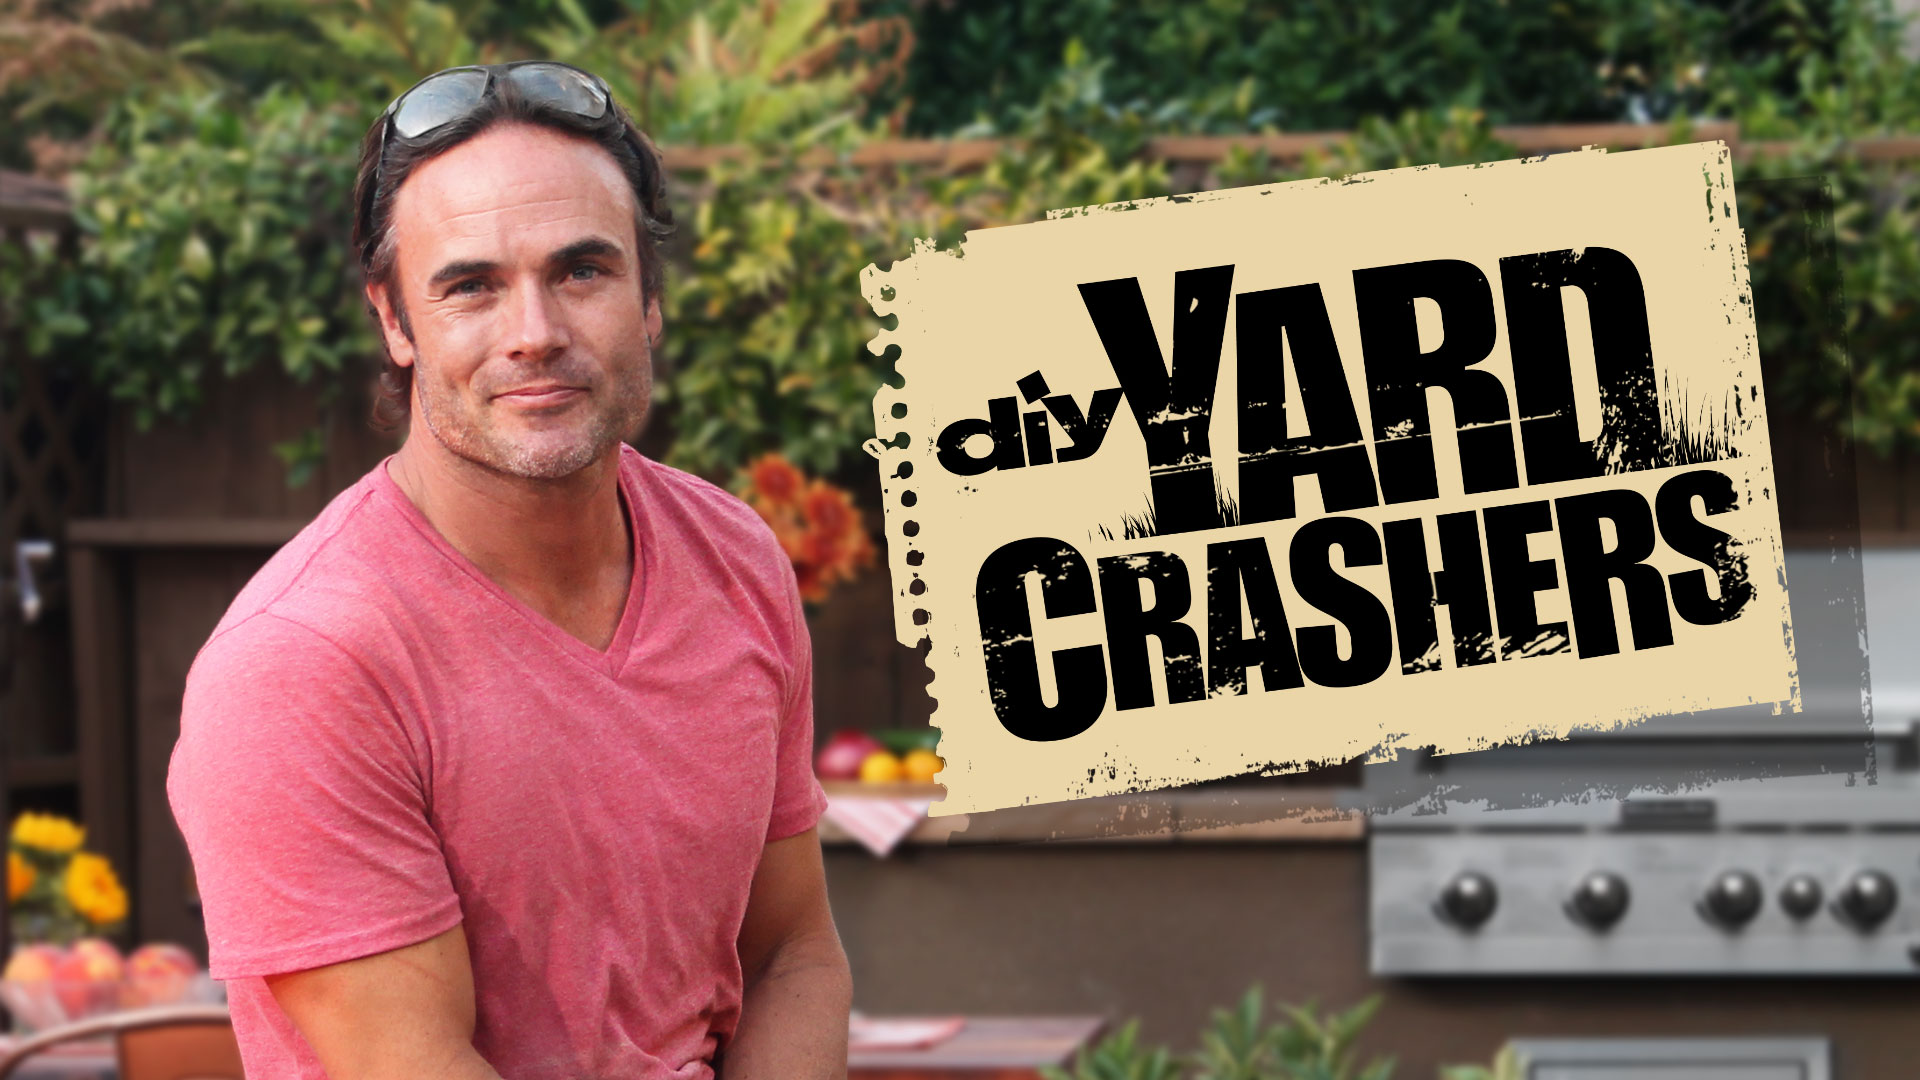 Diy yard crashers casting Is kitchen crashers really free